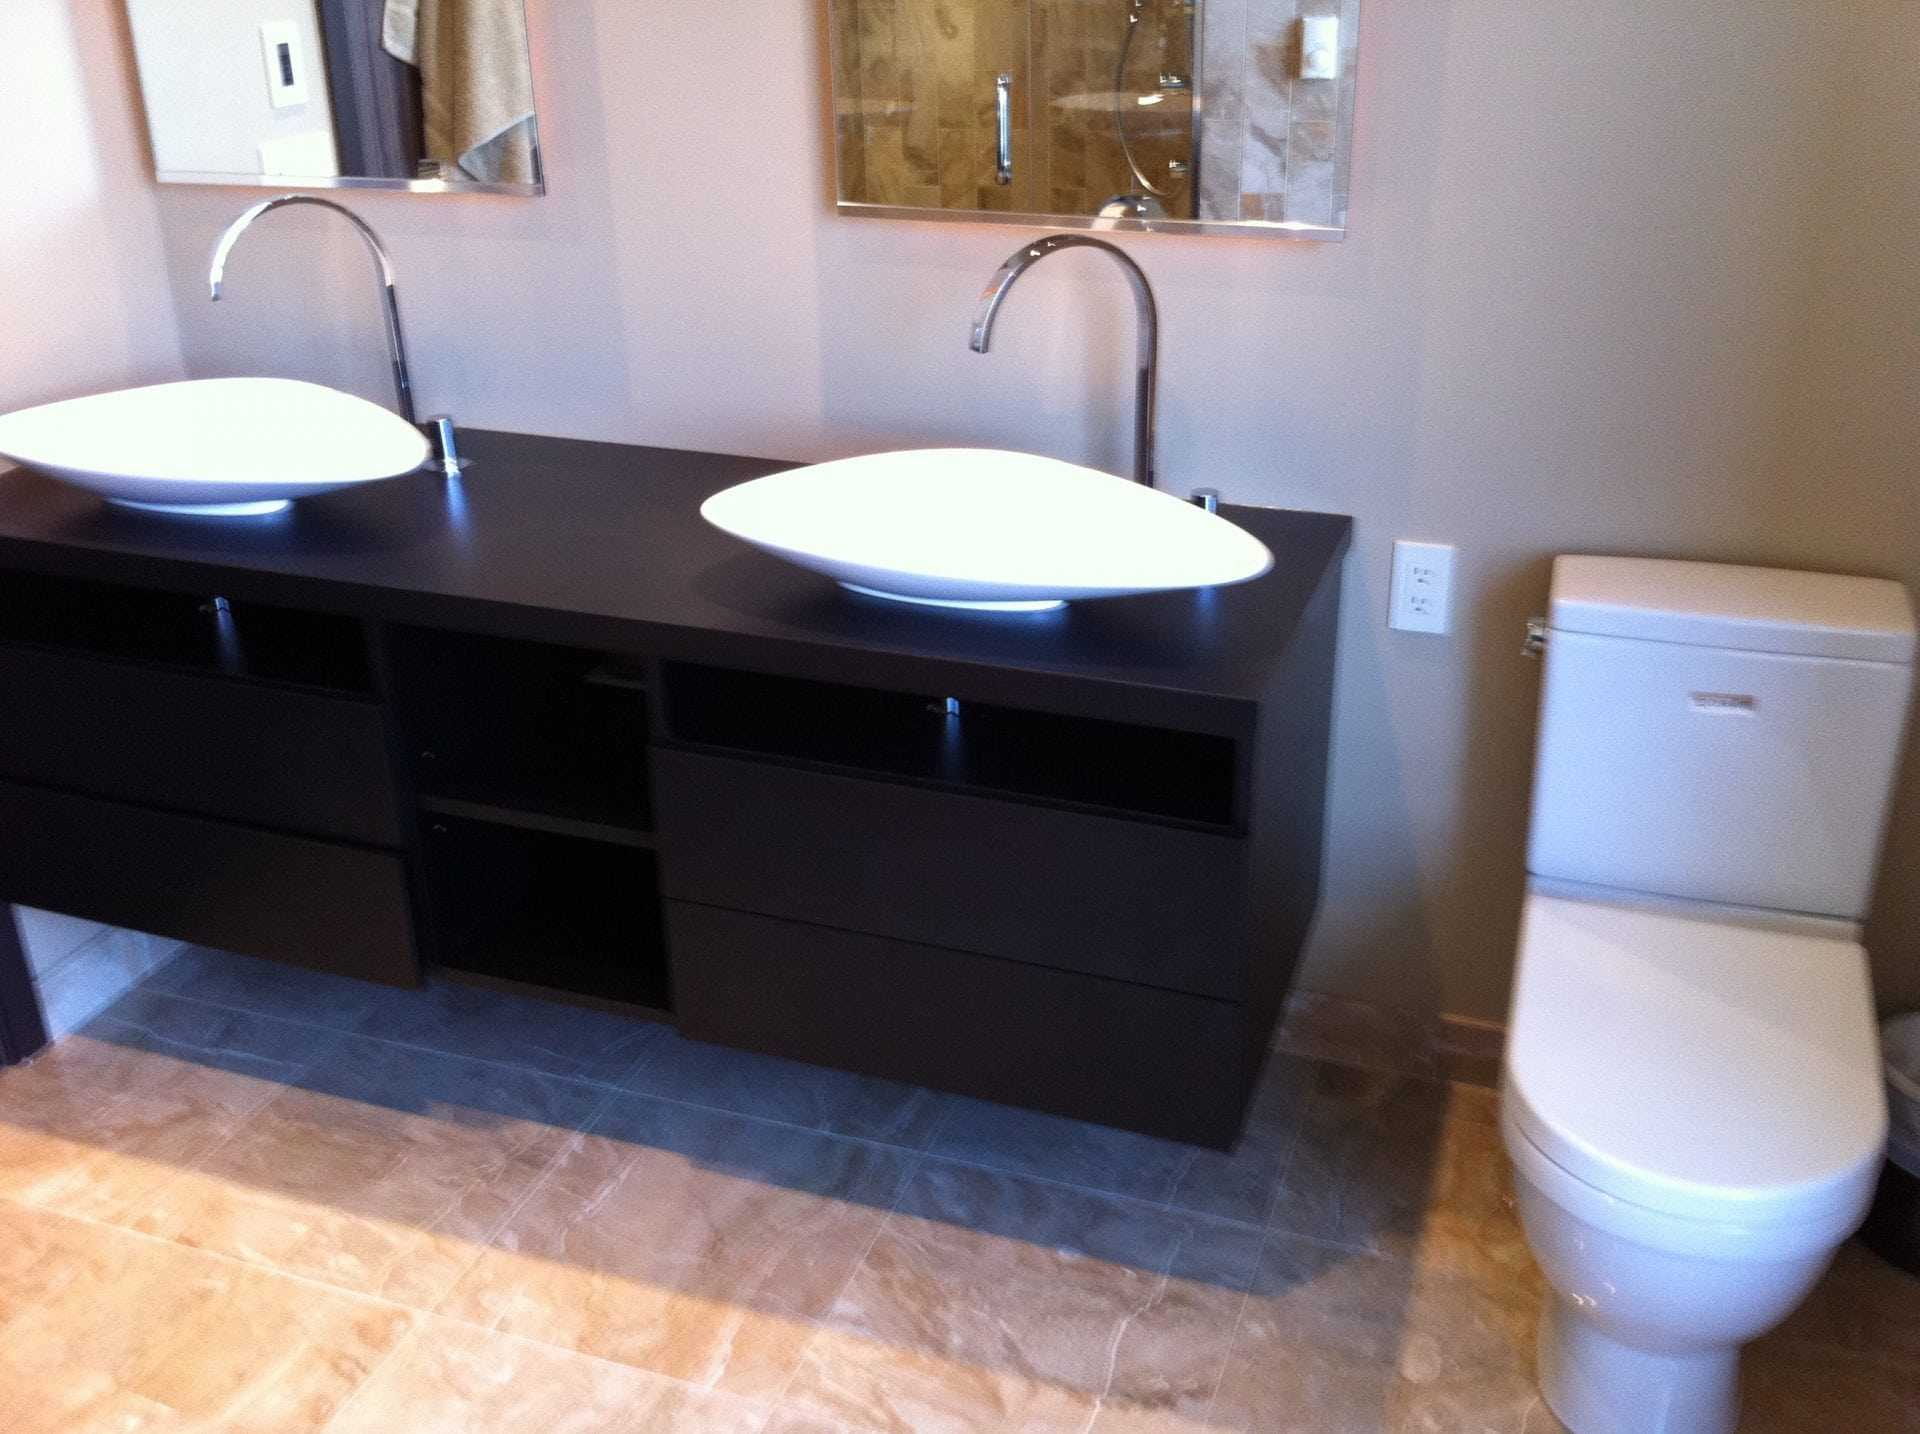 Bathroom Remodelling Contractors fred bathroom remodeling contractors chicago | bathroom remodeling